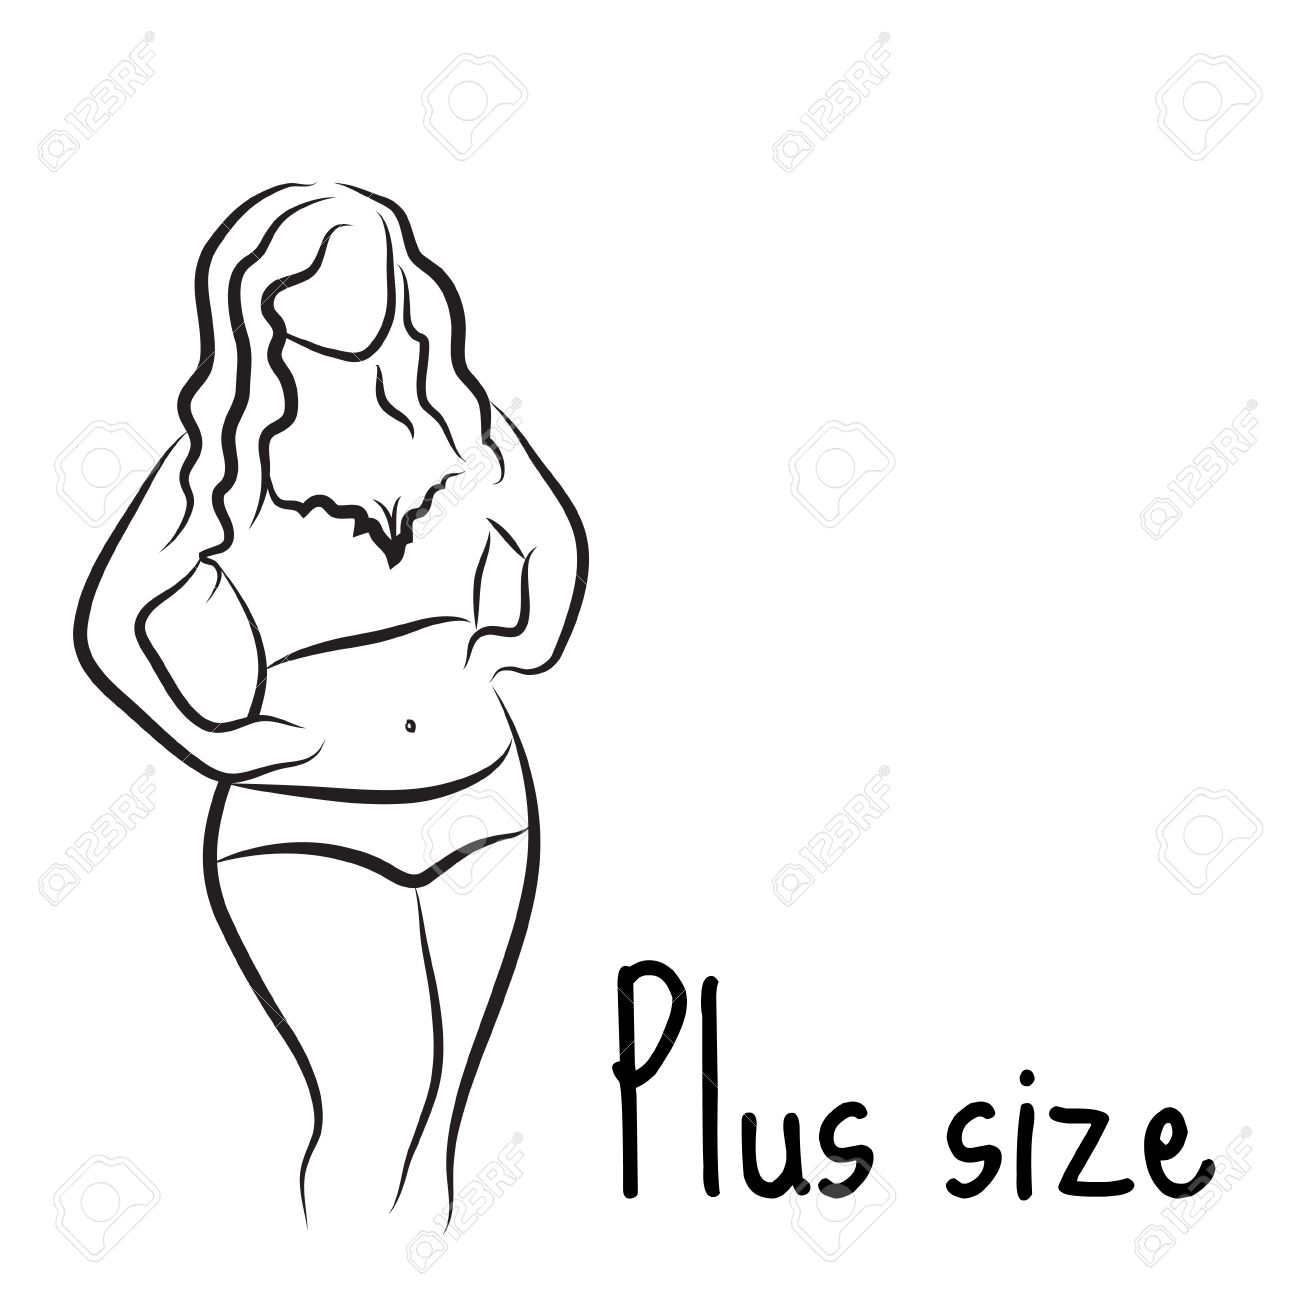 1300x1297 Plus Size Model Woman Sketch. Hand Drawing Style. Curvy Body